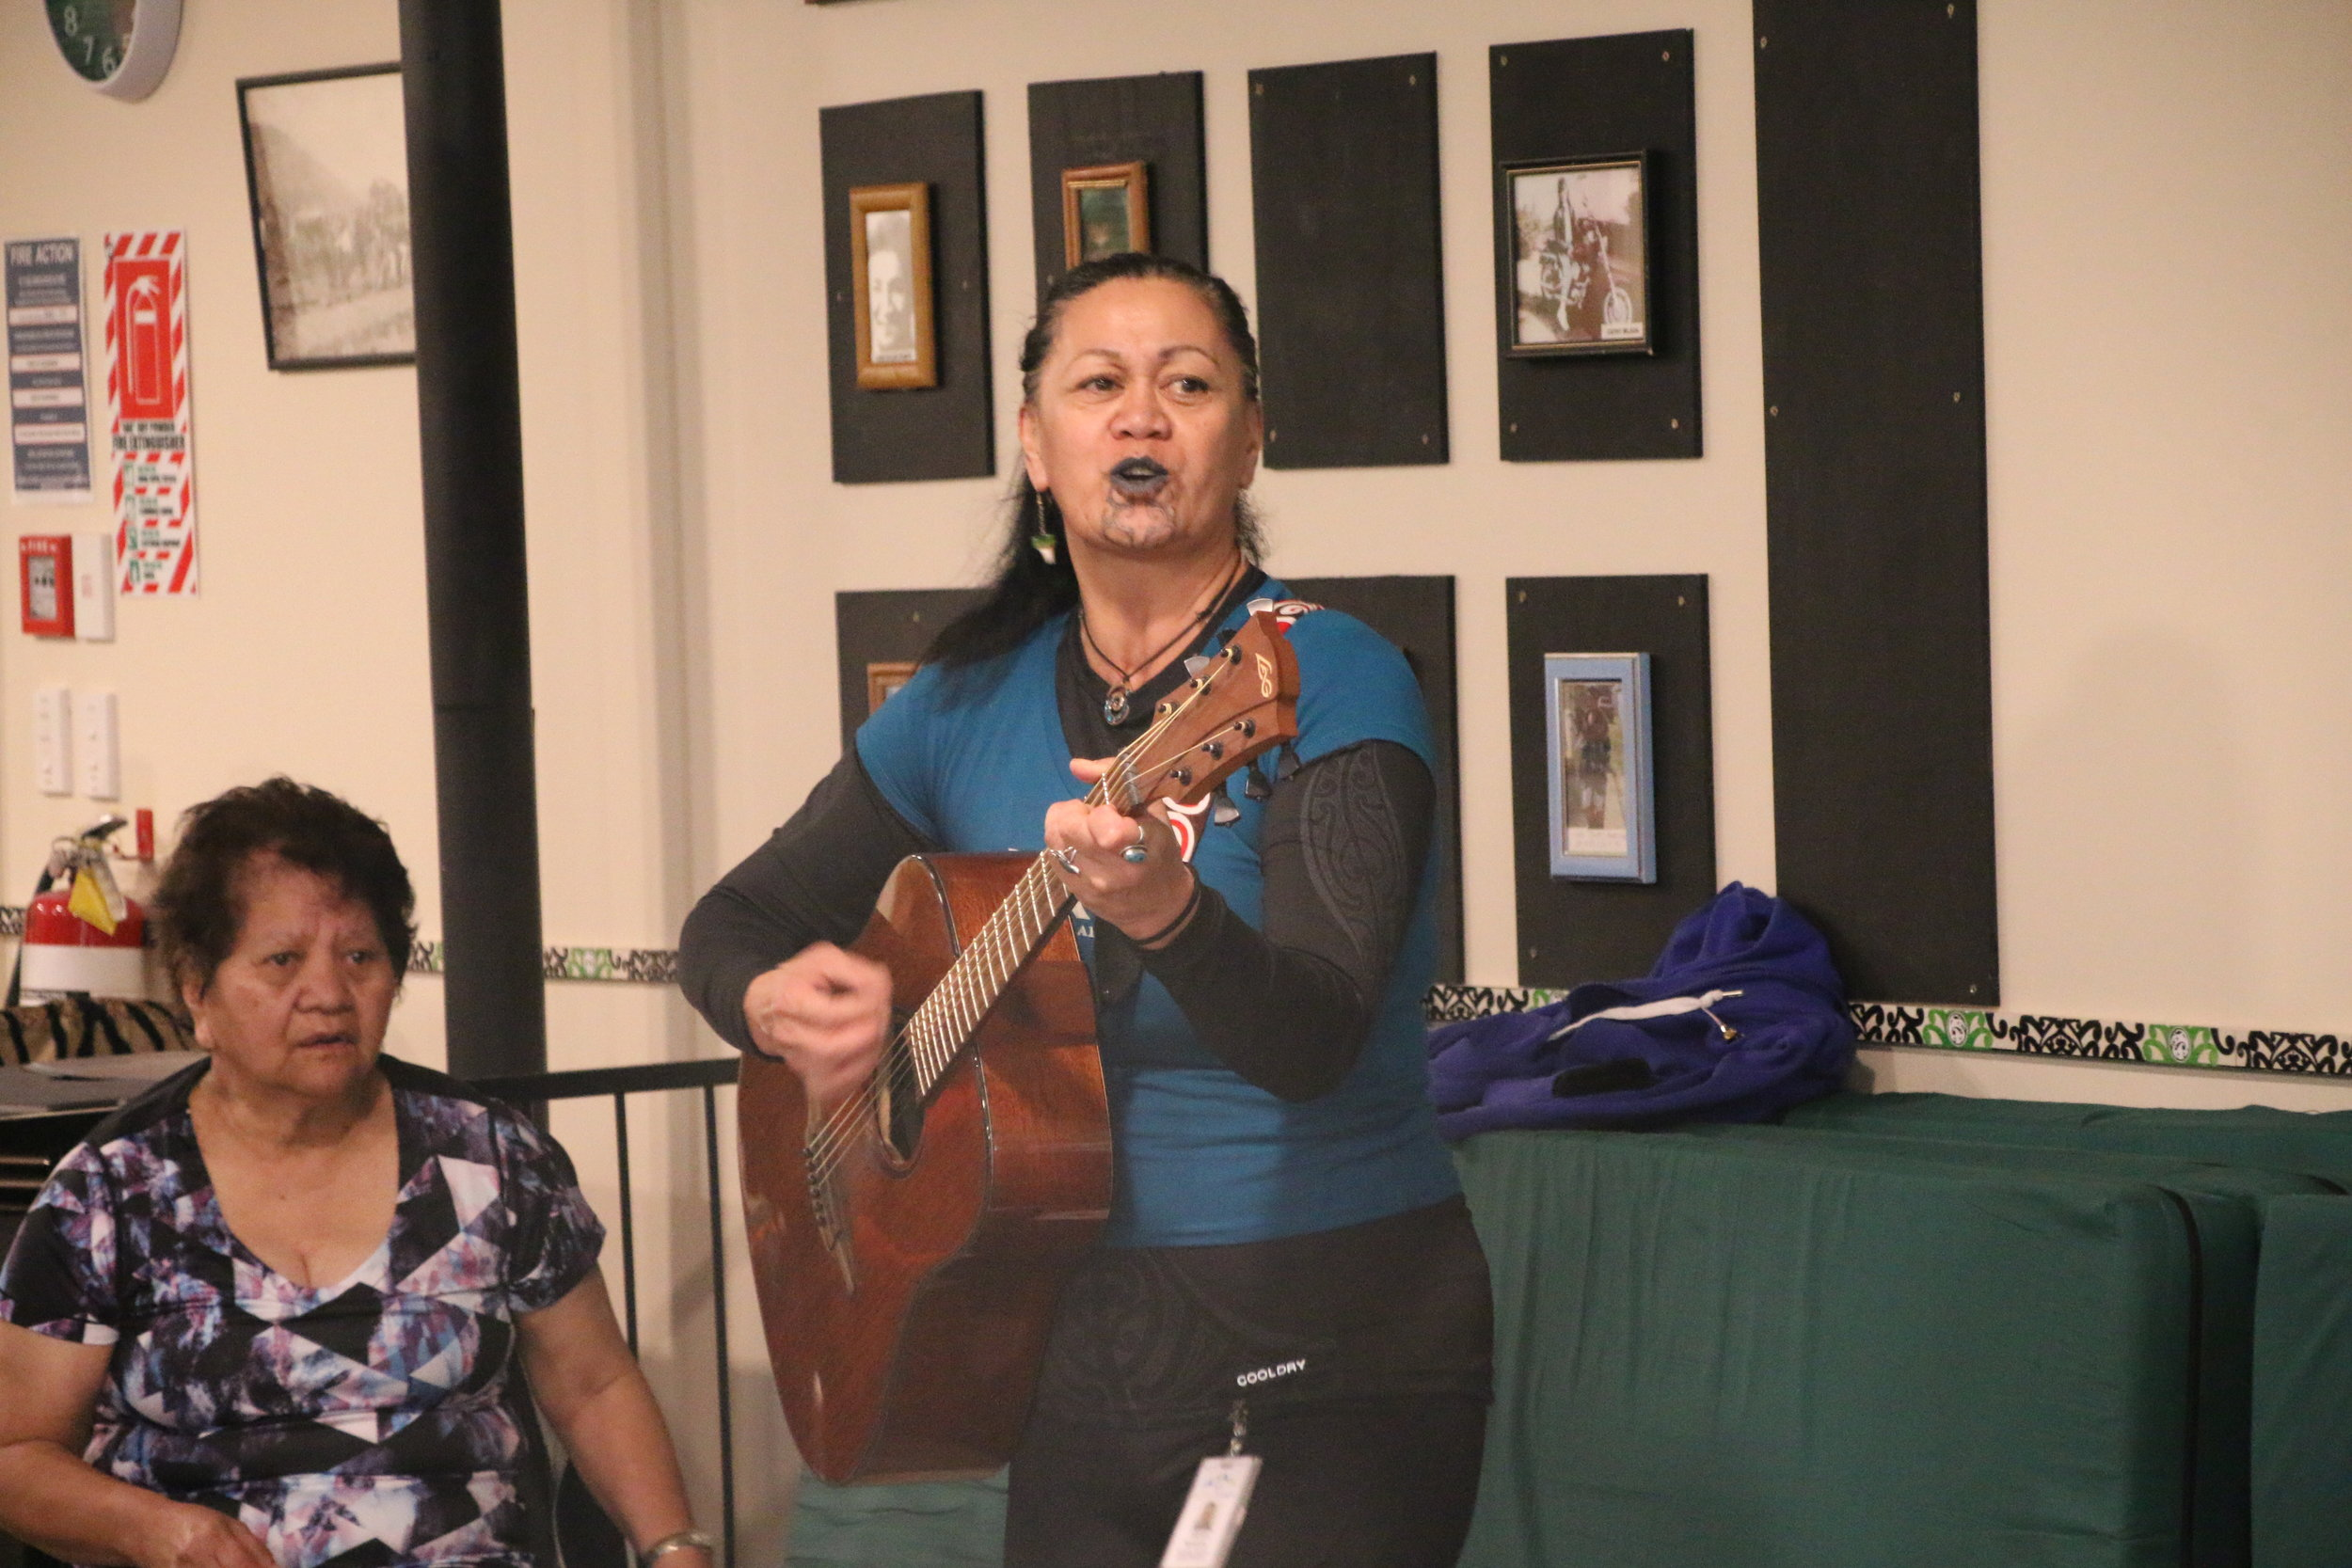 A slight technical issue led to the good ol' guitar as a fill in during Noho Pakari/Tu Kaha. Sharlene Maniapoto plays under the watchful eye of Whāea Erana Maxwell